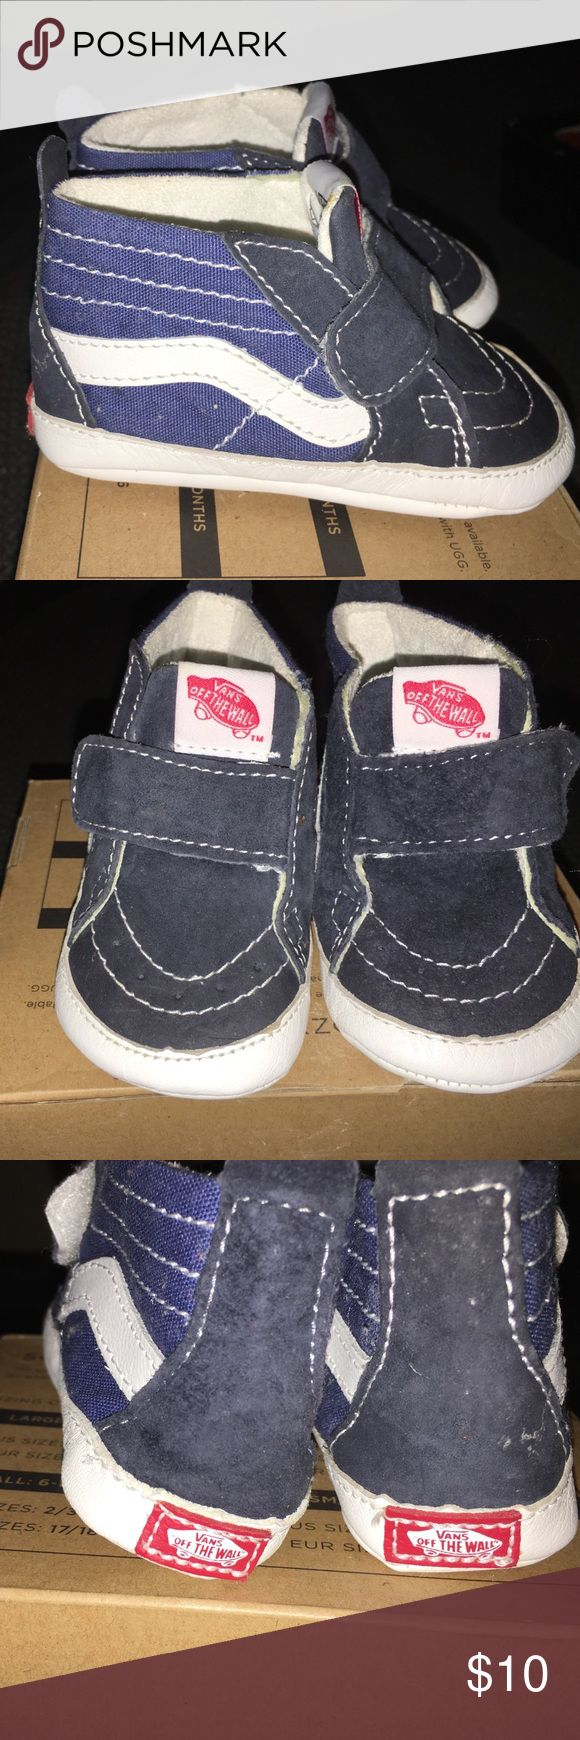 Soft bottom Vans Sneakers These skateboard Vans for baby boy are too cute. Blue and white with Velcro Strap for easy access. Soft bottom. Worn once! Vans Shoes Sneakers